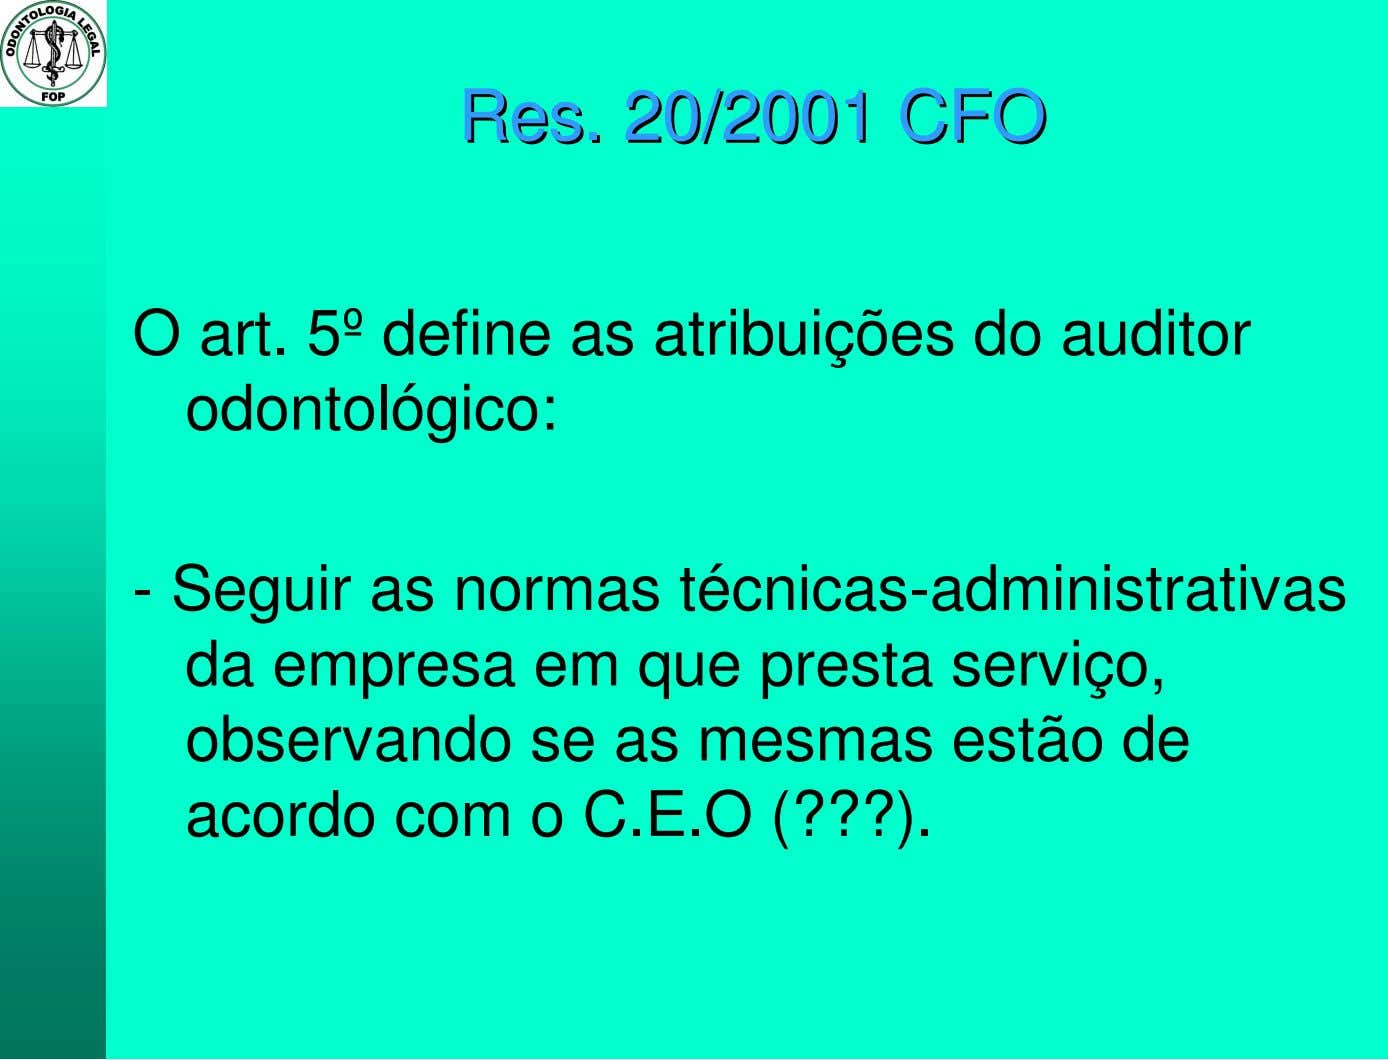 RReess 2200//22000011 CCFFOO O art. 5º define as atribuições do auditor odontológico: - Seguir as